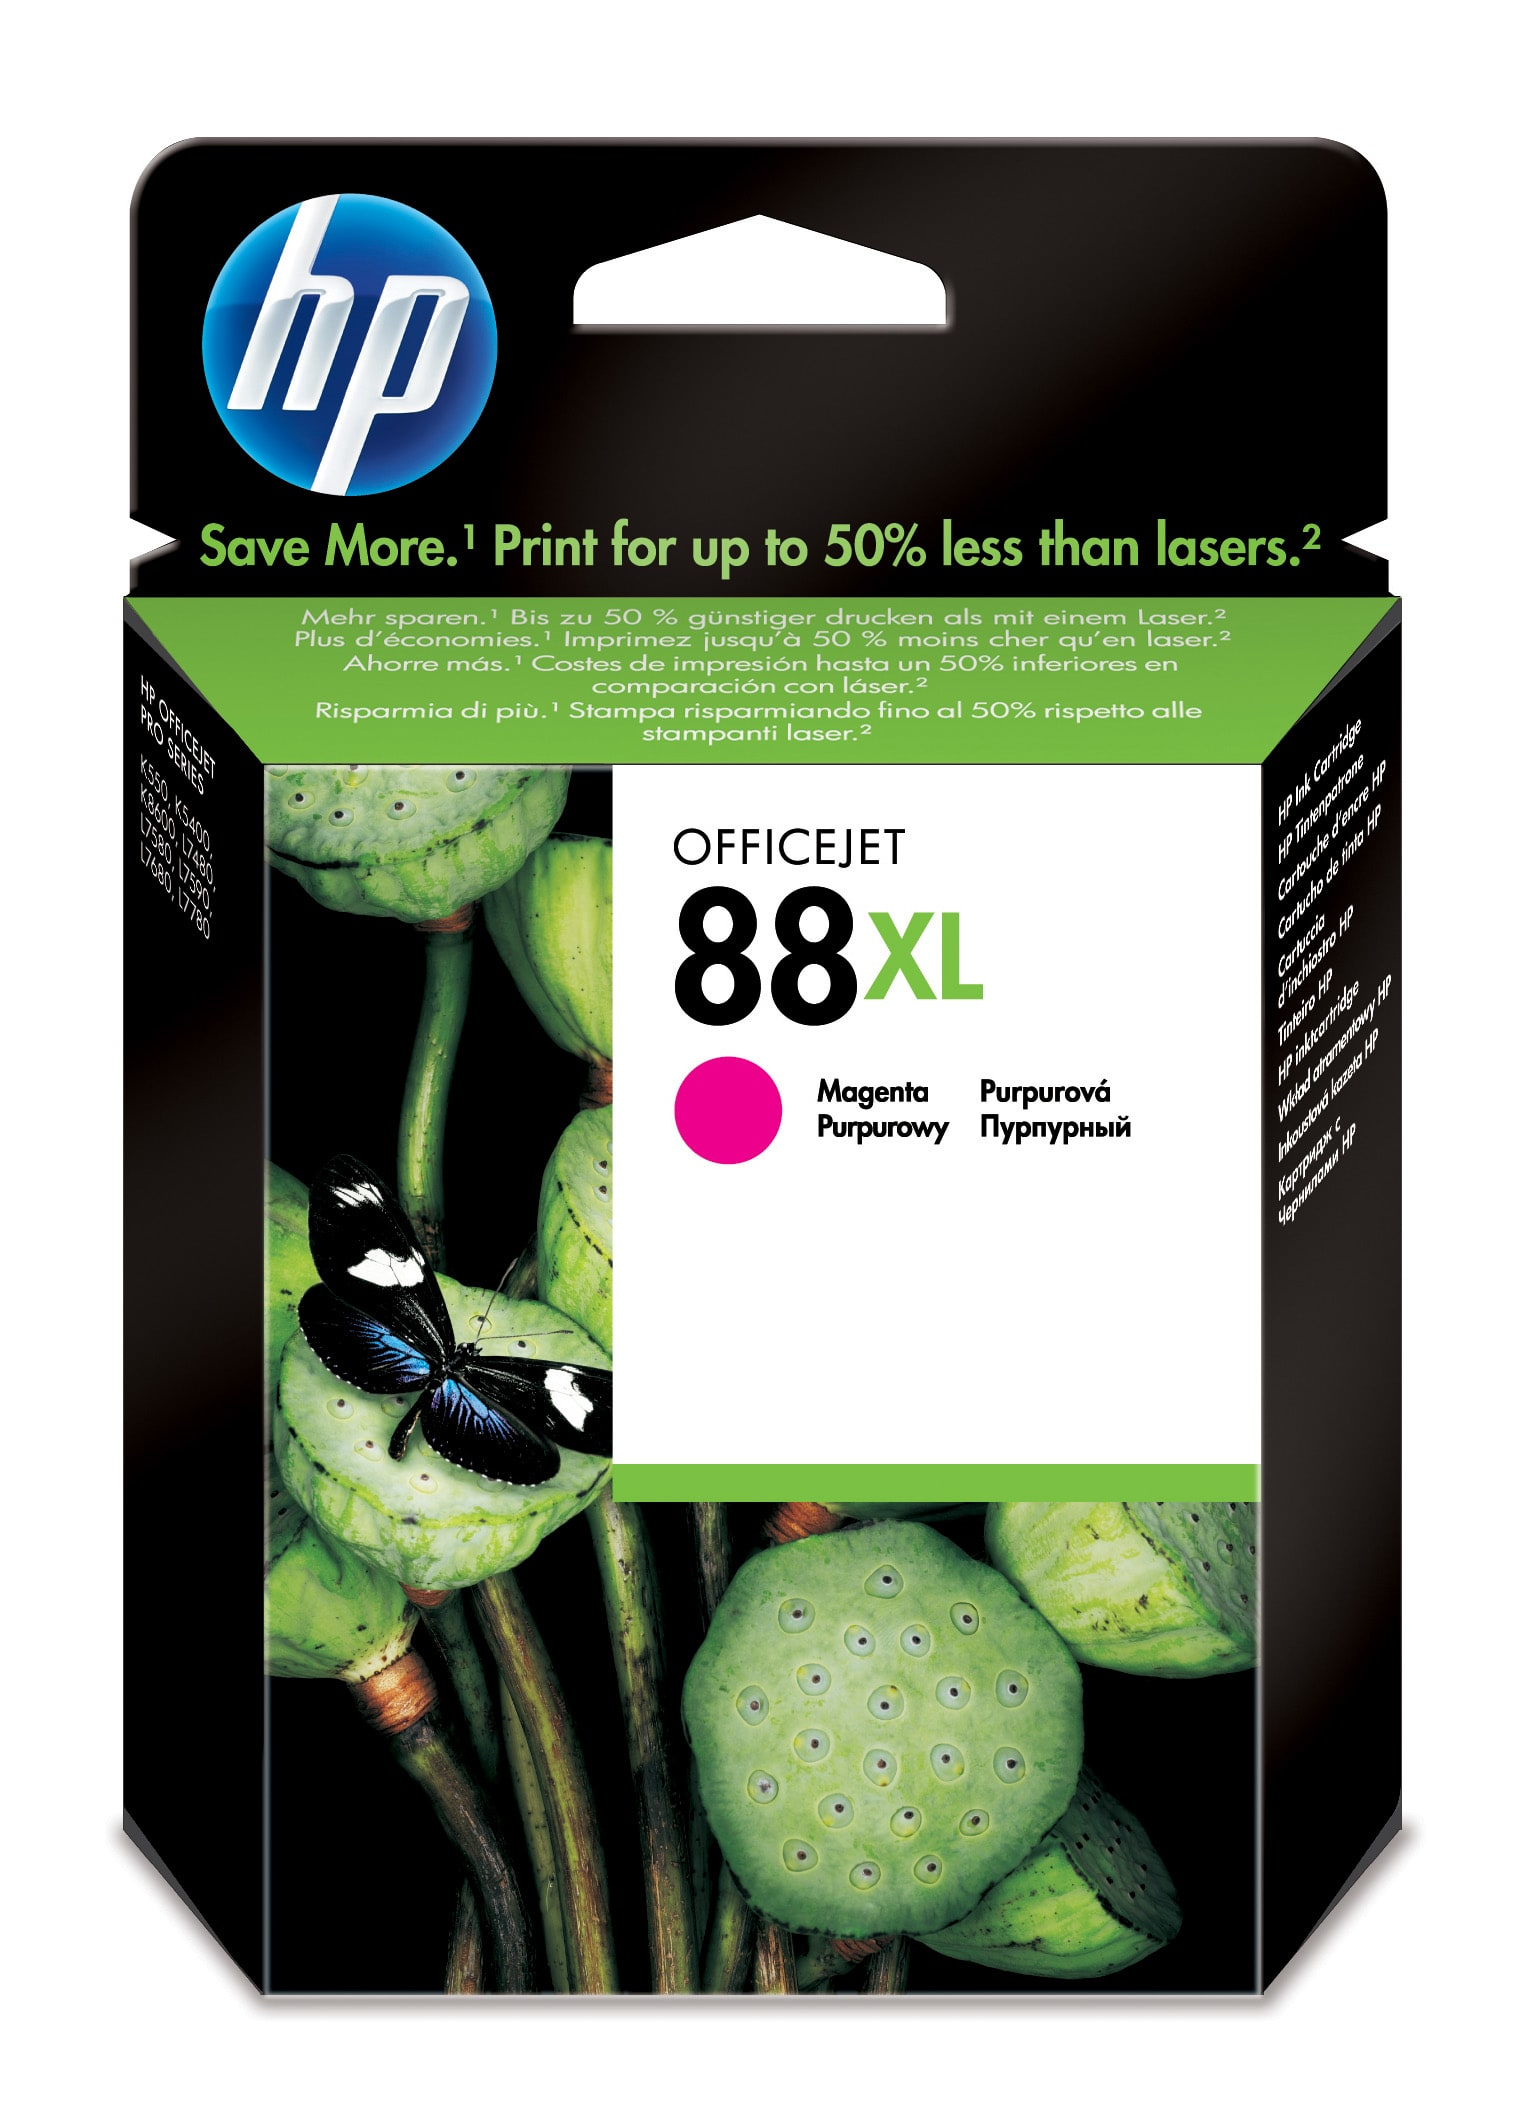 Remanufactured HP C9392AE (88XL) Magenta Ink Cartridge C9392AE - rem01